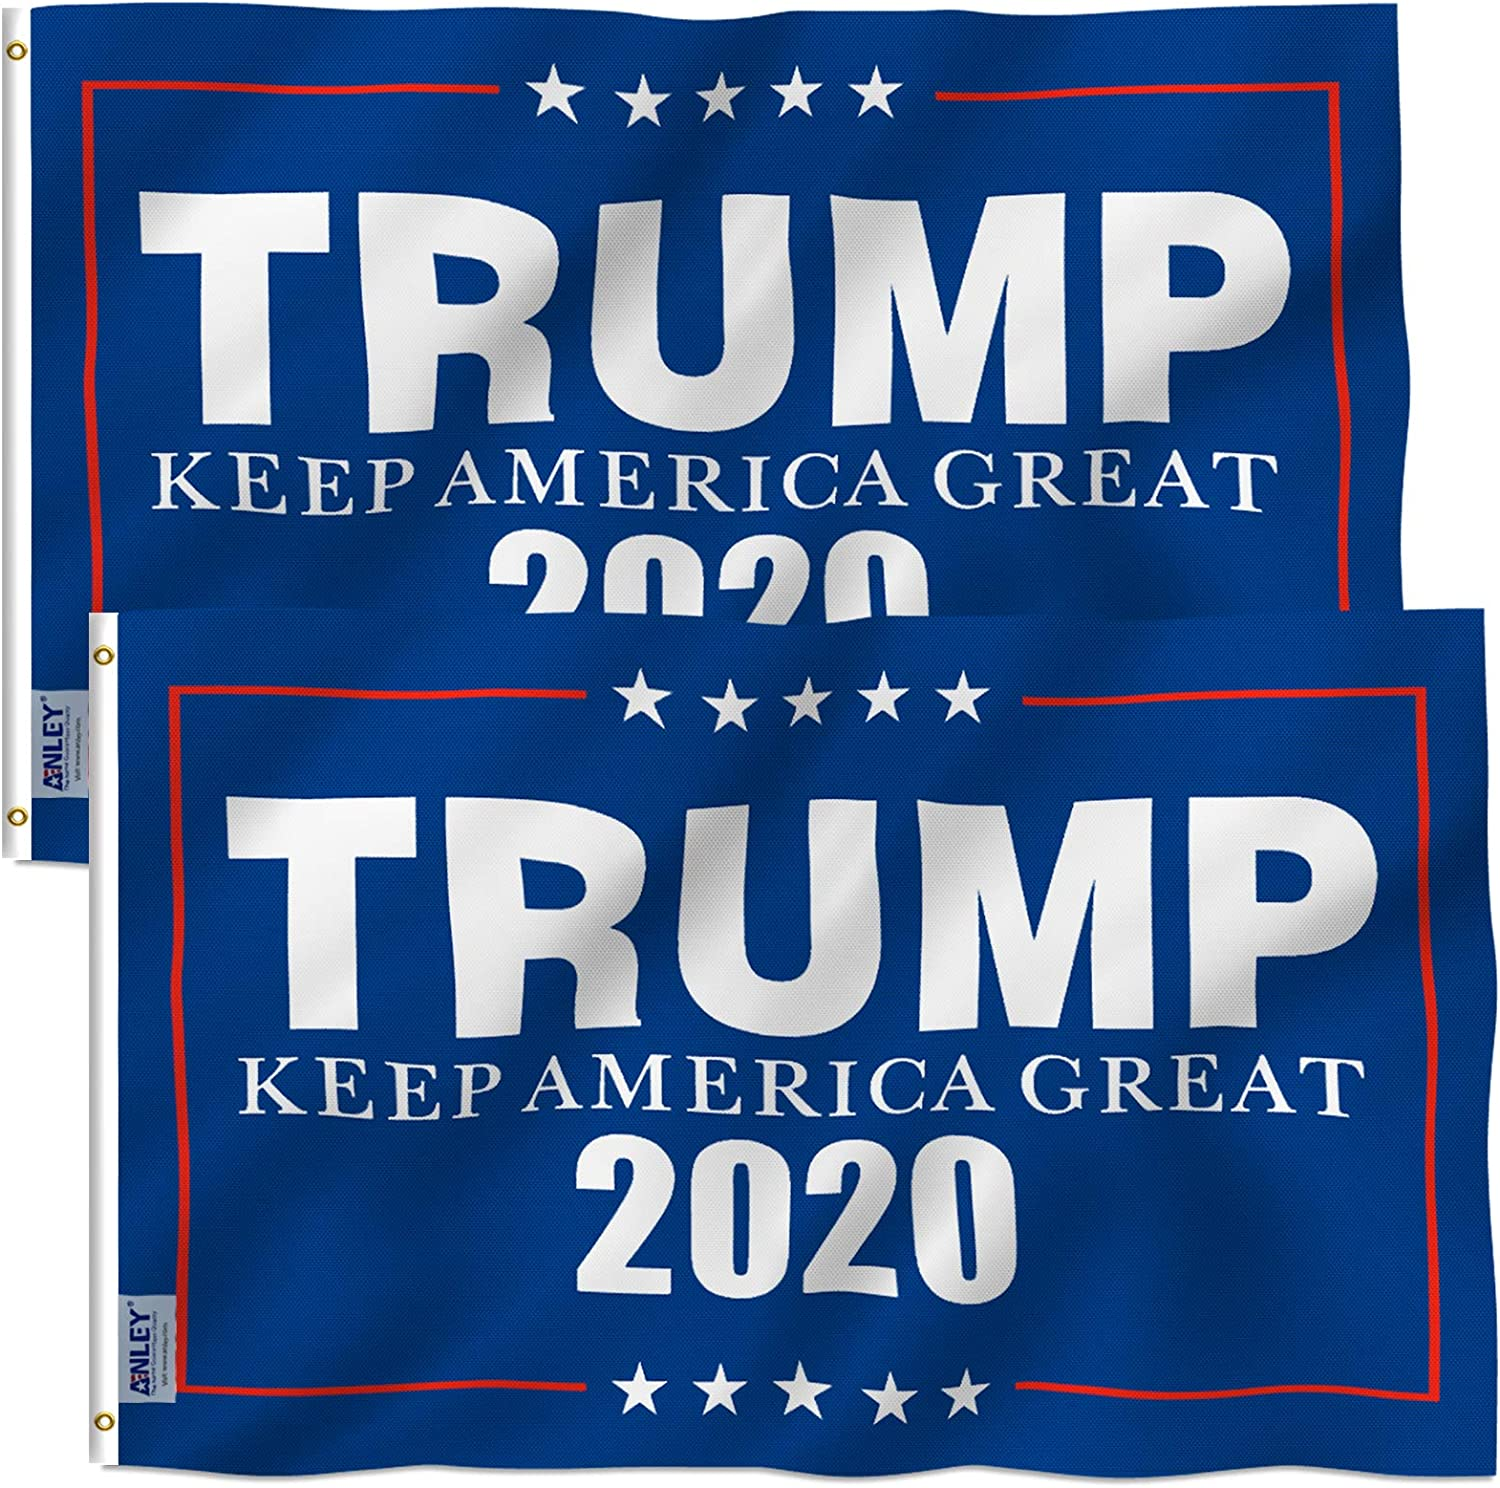 Popular New York Mall Anley Pack of 2 Fly Breeze 3x5 Viv Flag 2020 - Donald Trump Foot